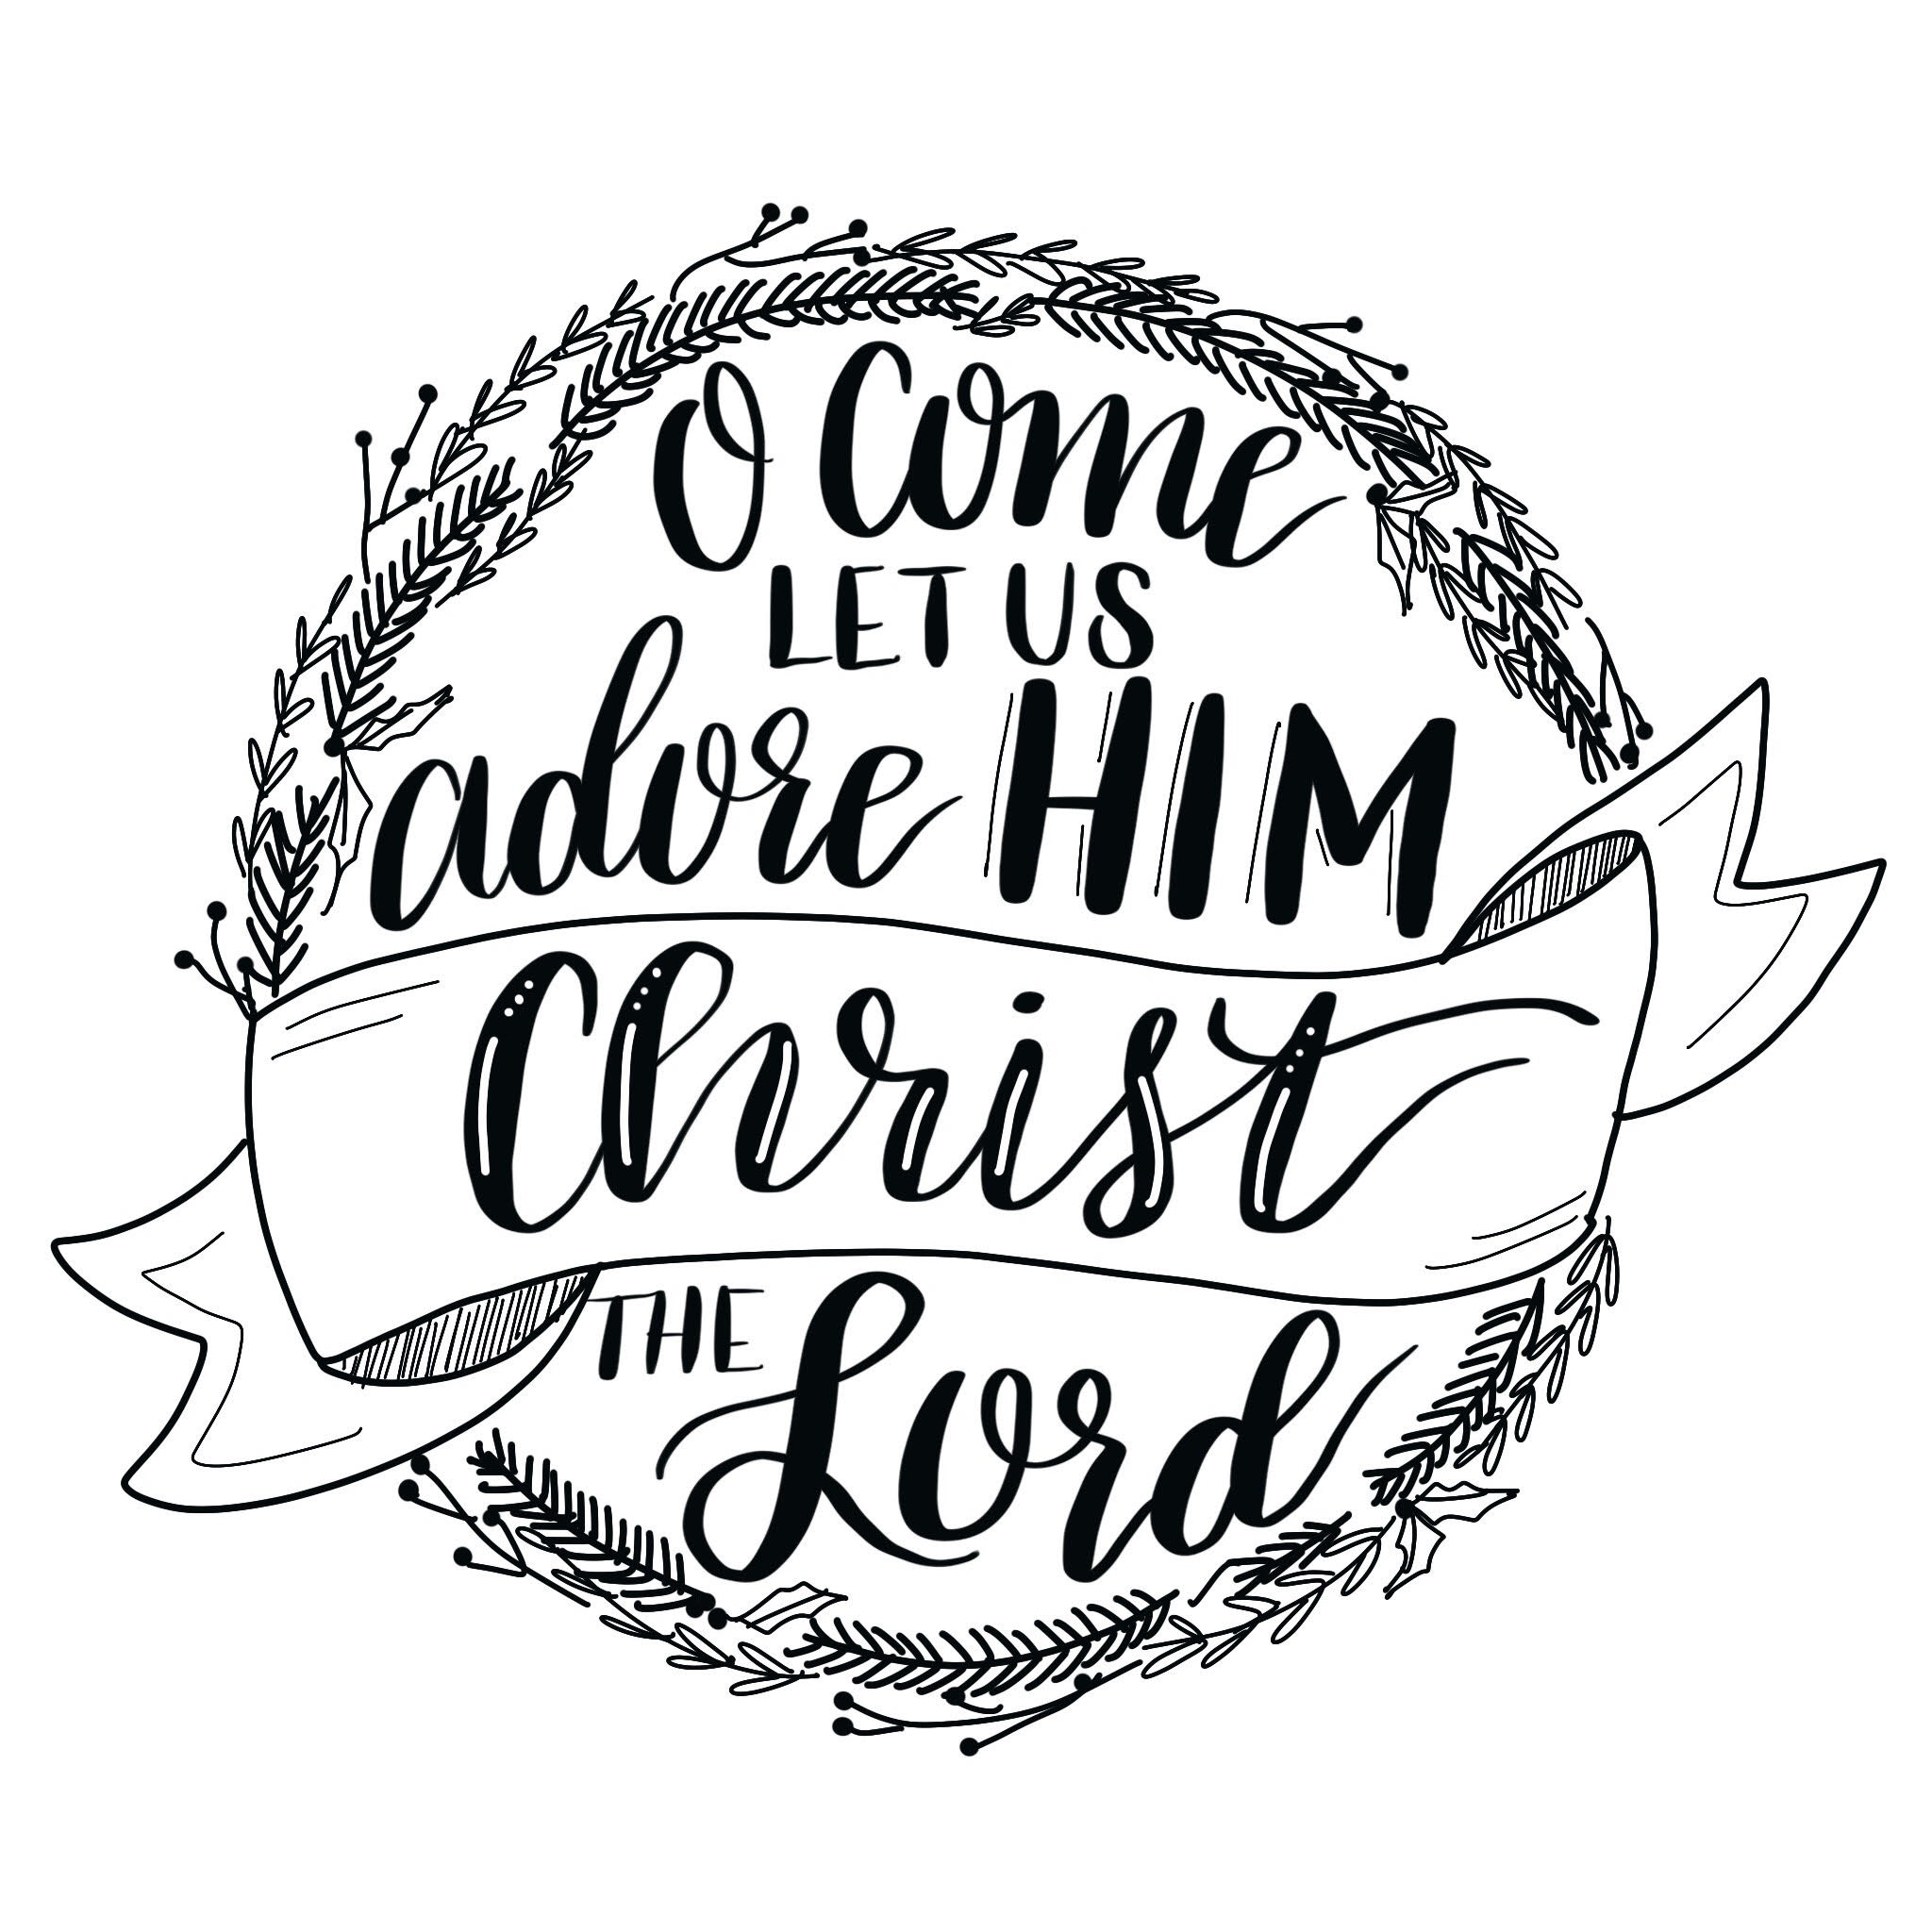 Hand Lettered Christmas Hymn Tutorial & Printable